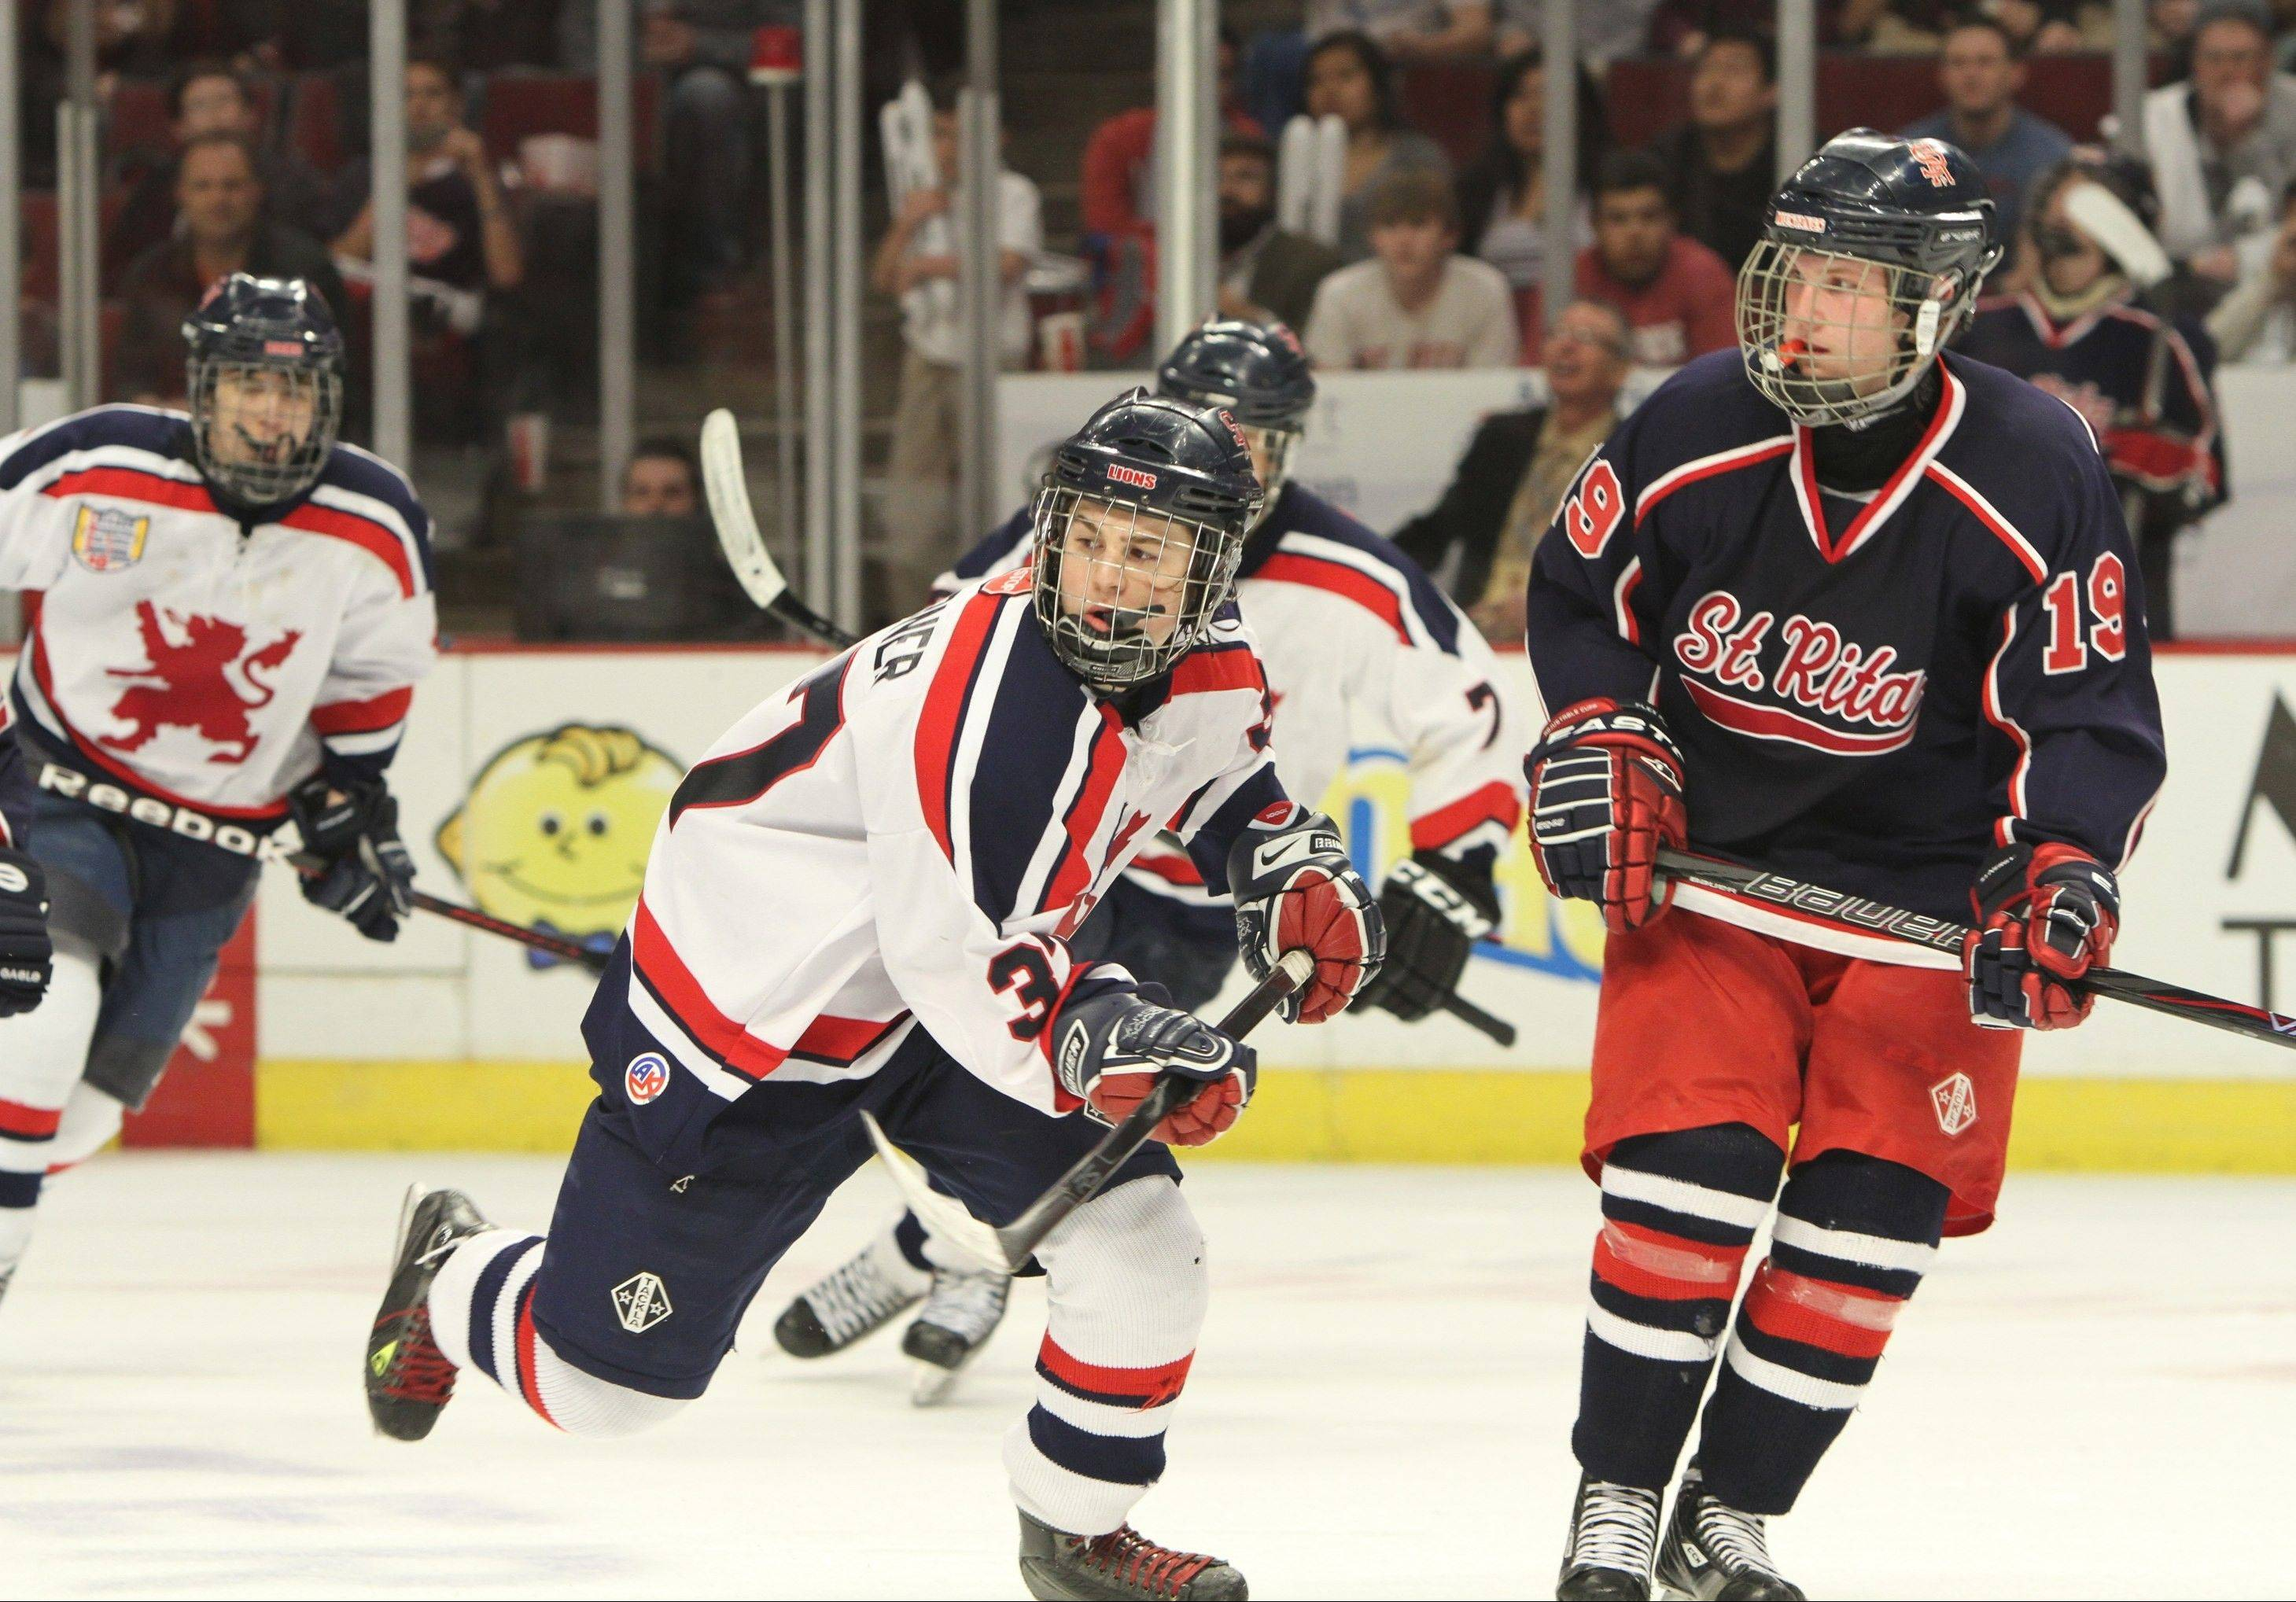 St. Rita and St. Viator played for the state championship in March at the United Center. The landscape in Illinois high school hockey has changed decisively since then.